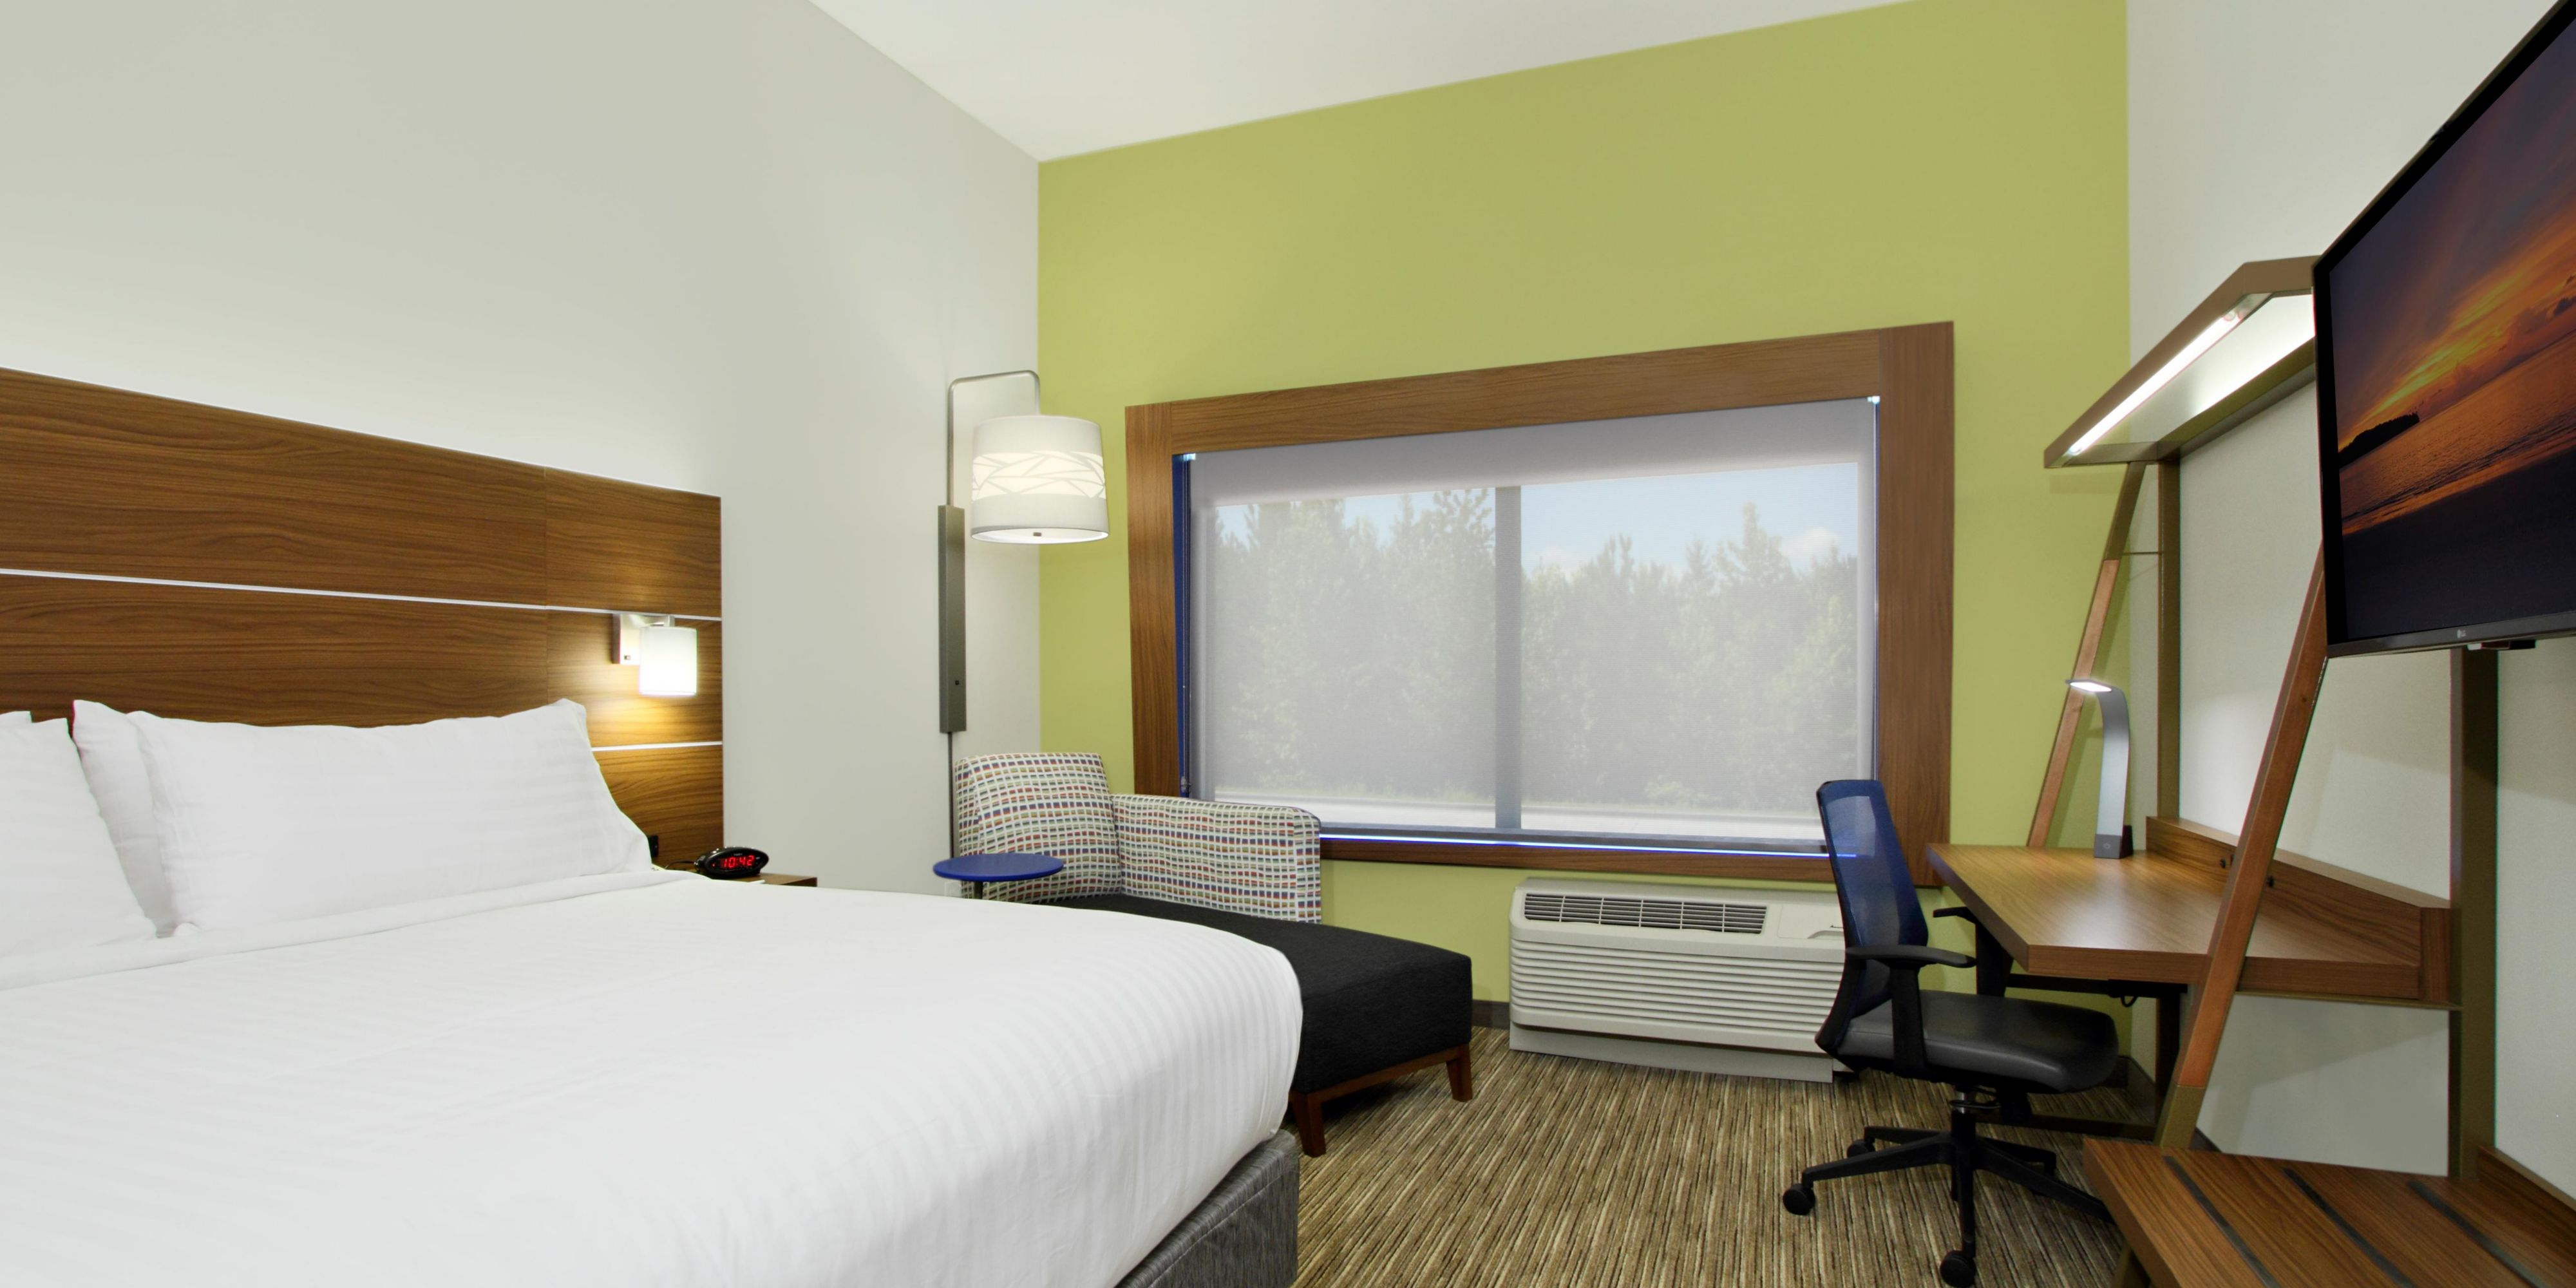 Holiday Inn Express Jasper 4605880891 2x1